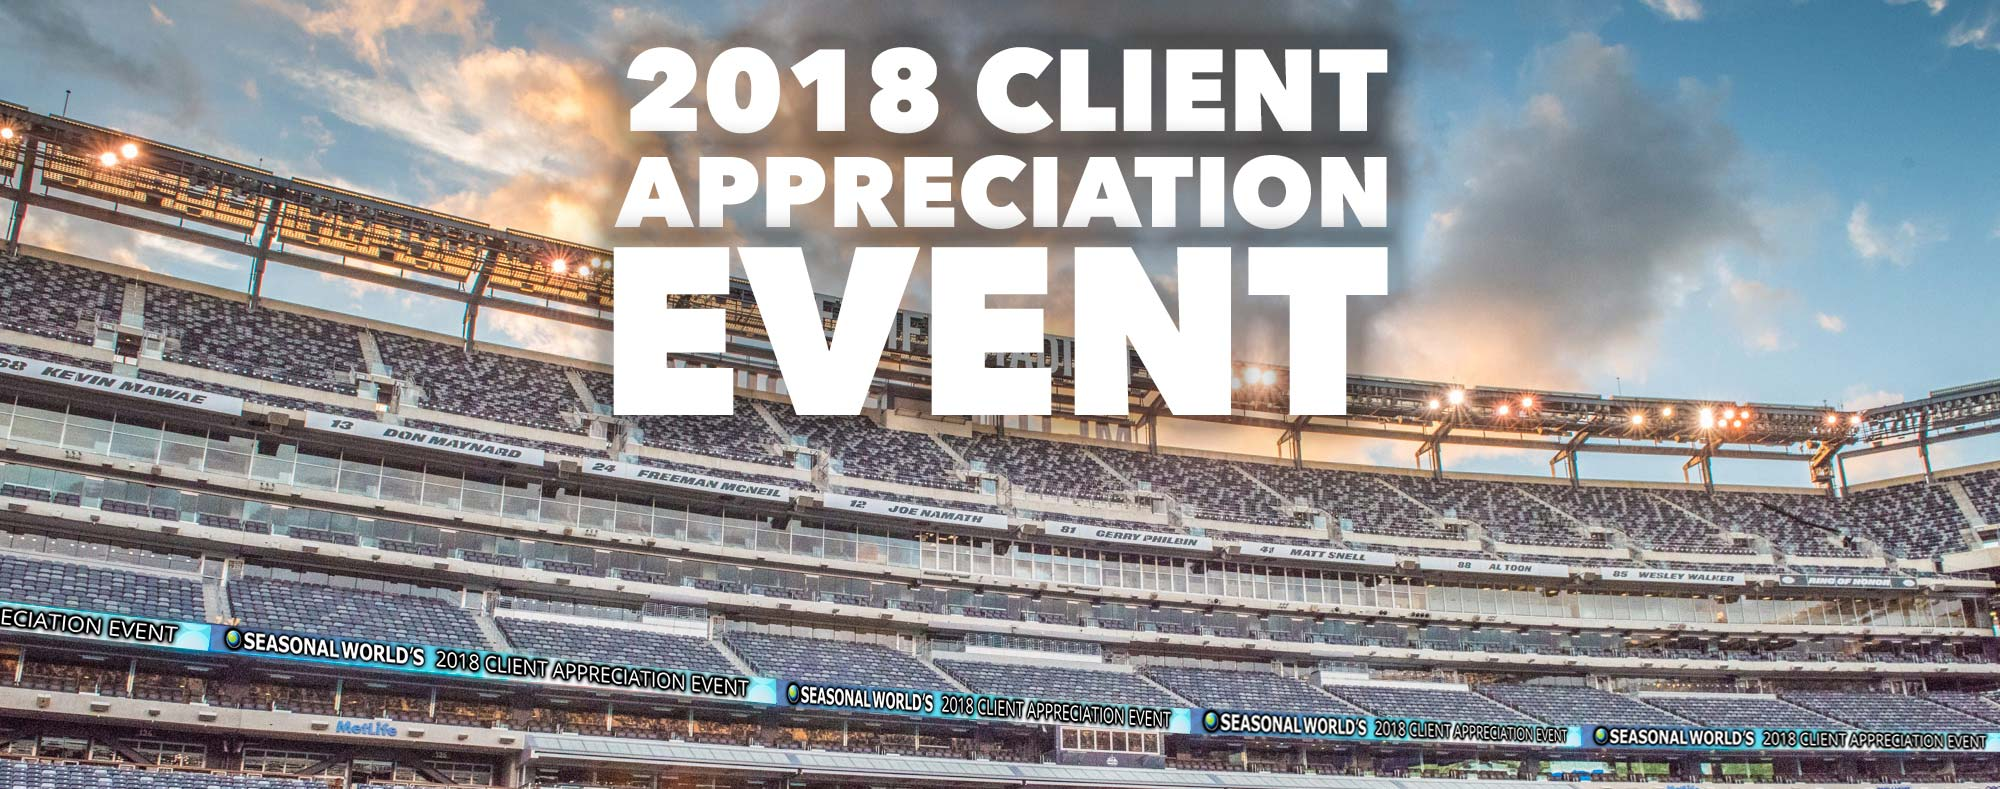 2018 Client Appreciation